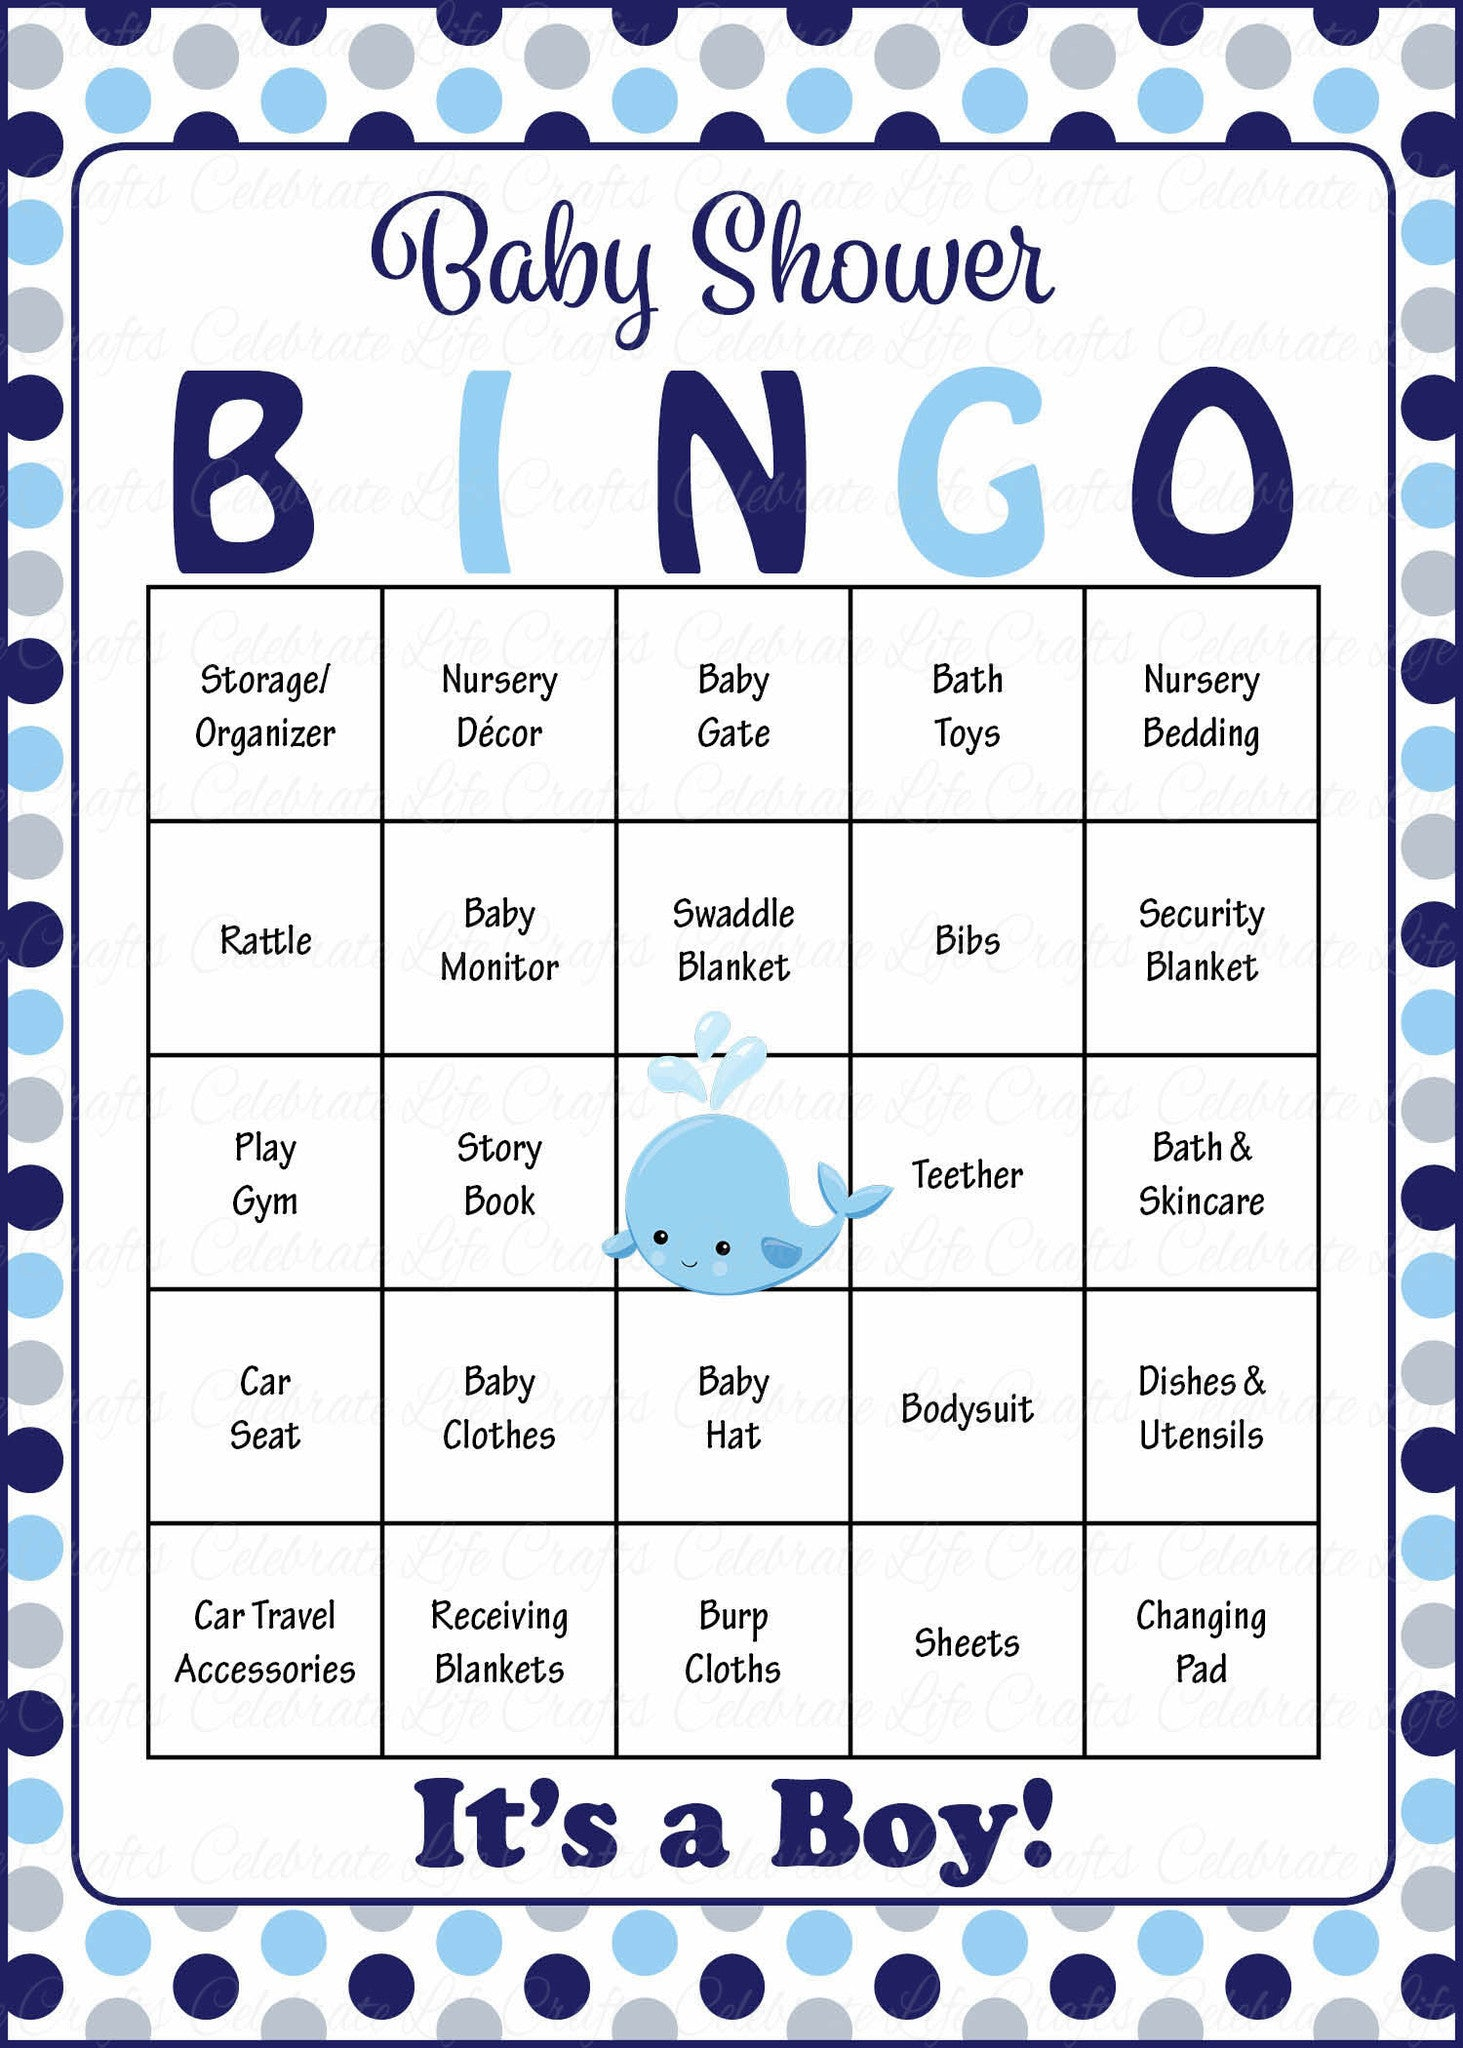 Whale baby shower game download for boy baby bingo celebrate whale baby bingo cards printable download prefilled baby shower game for boy navy gray polka dots b15007 solutioingenieria Gallery